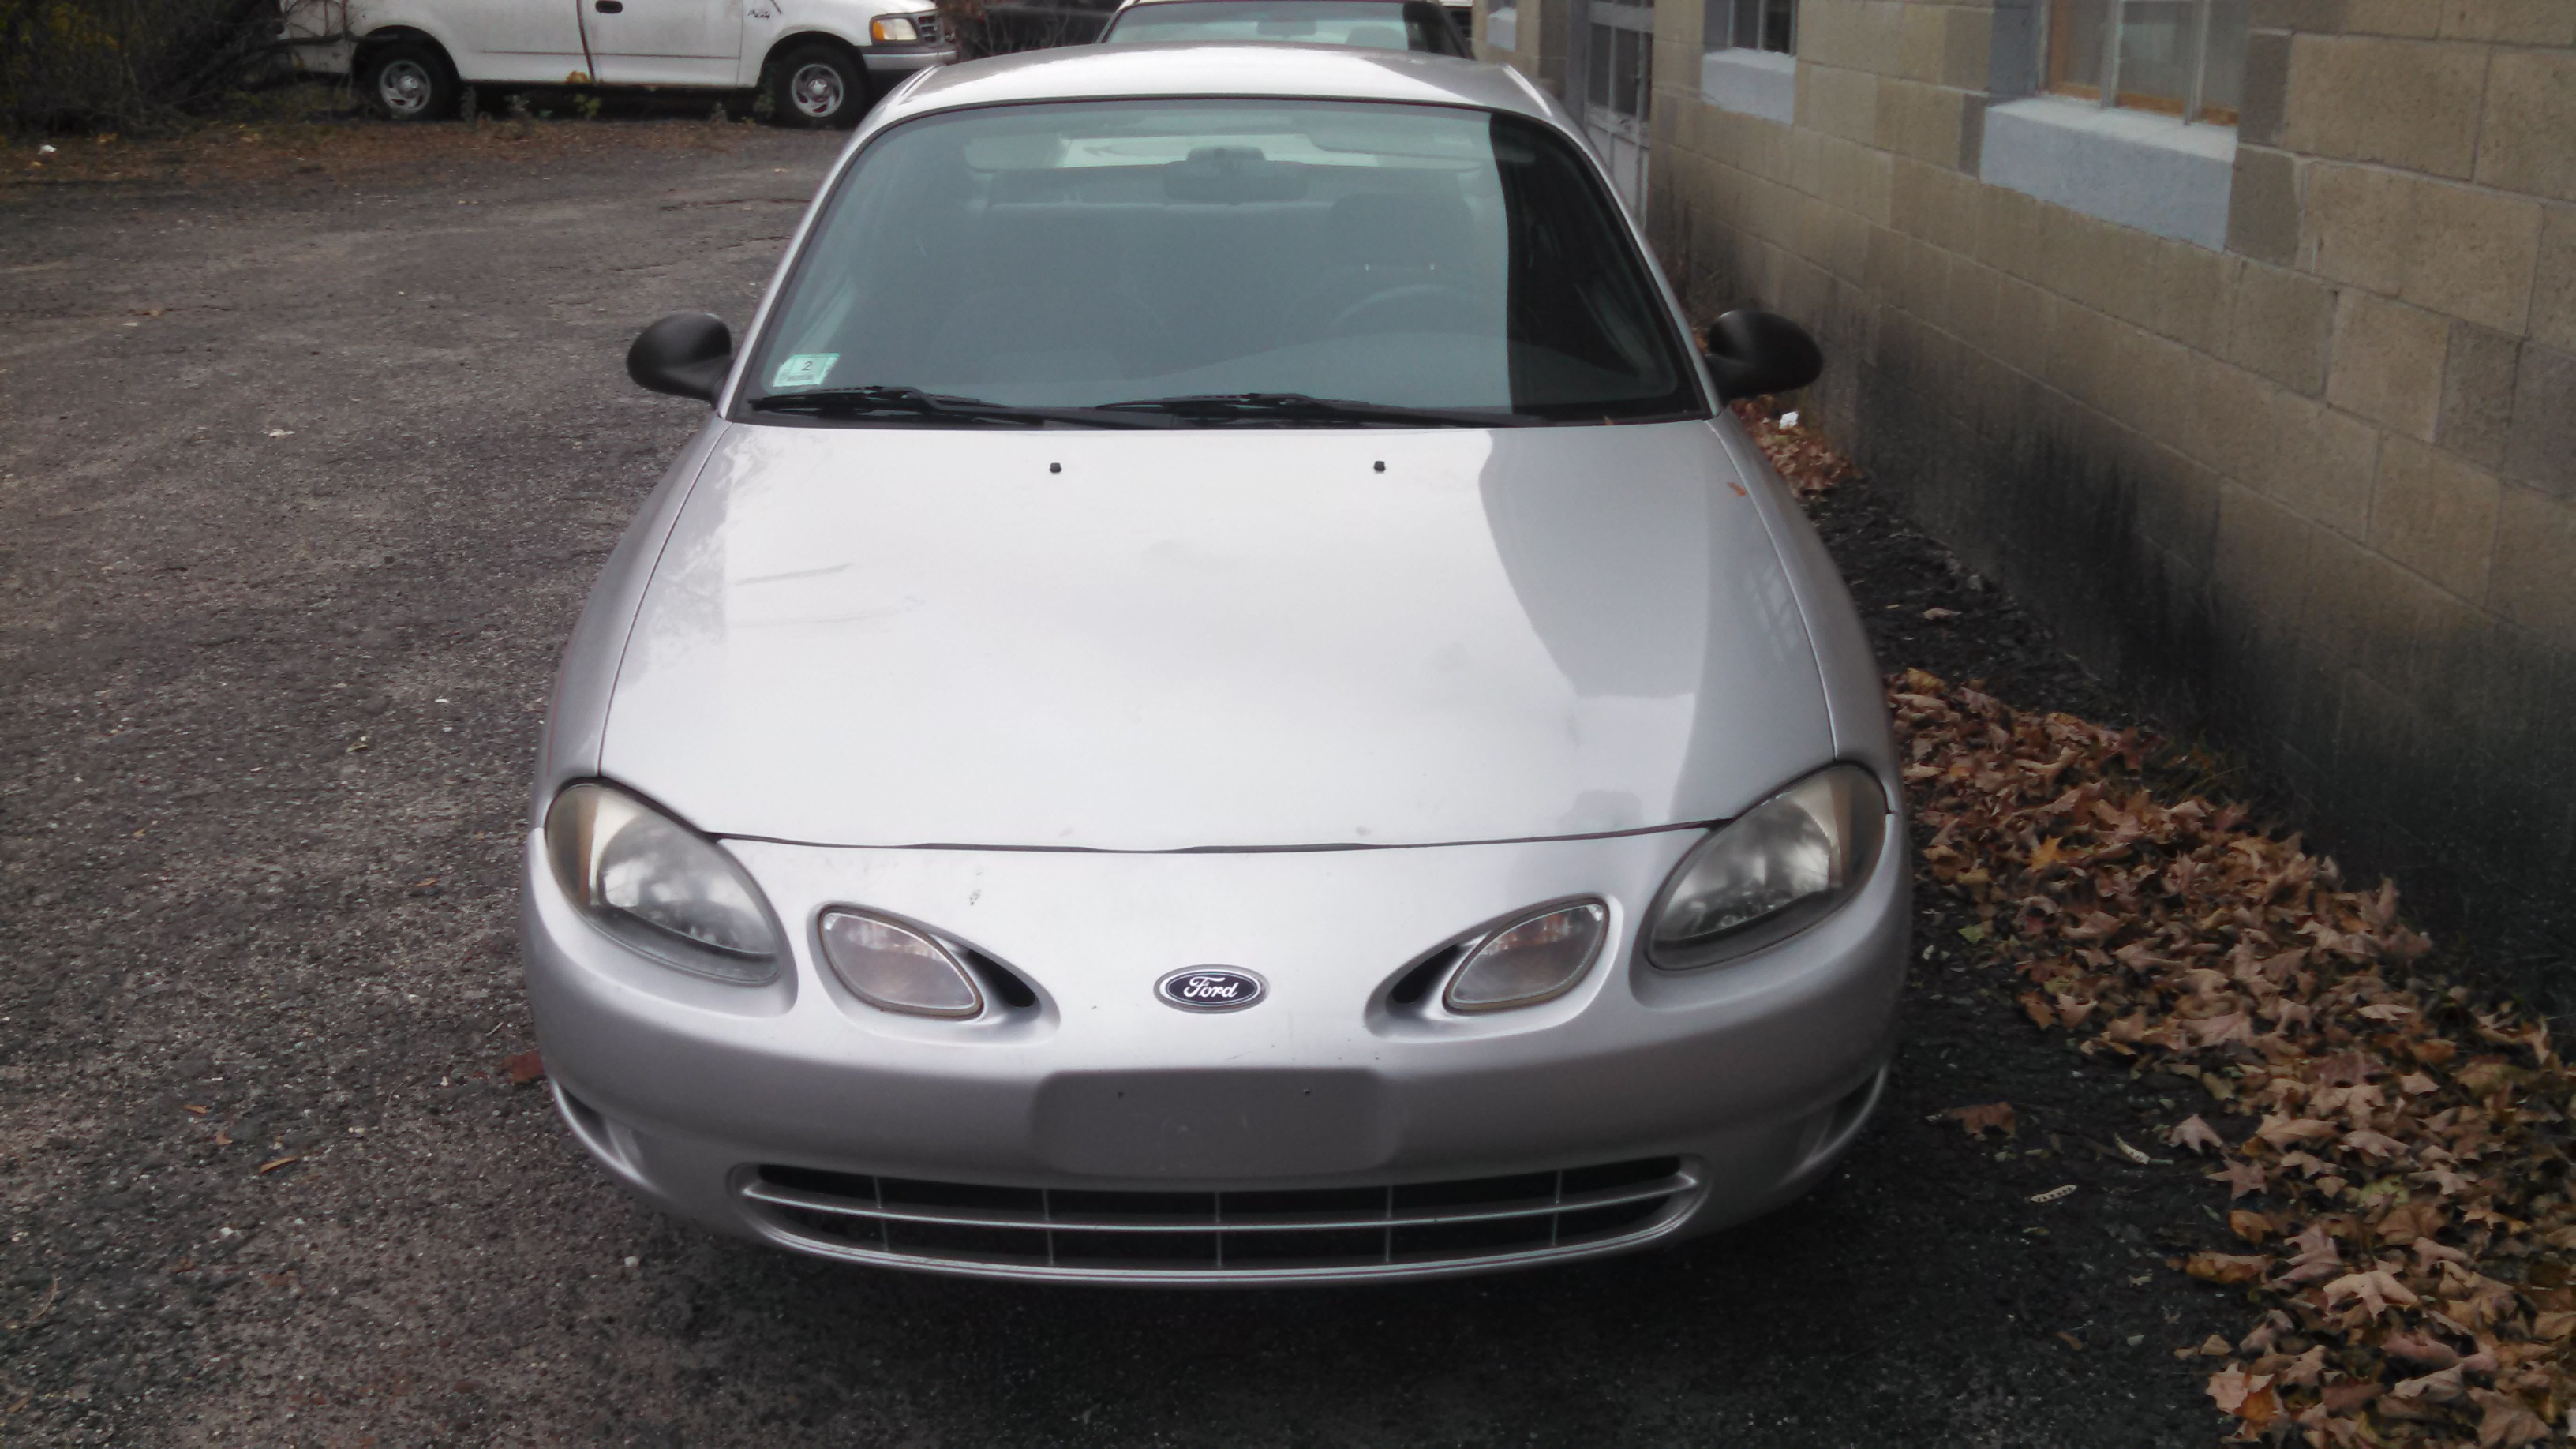 Ford Escort Zx2 Parts at Andys Auto Sport